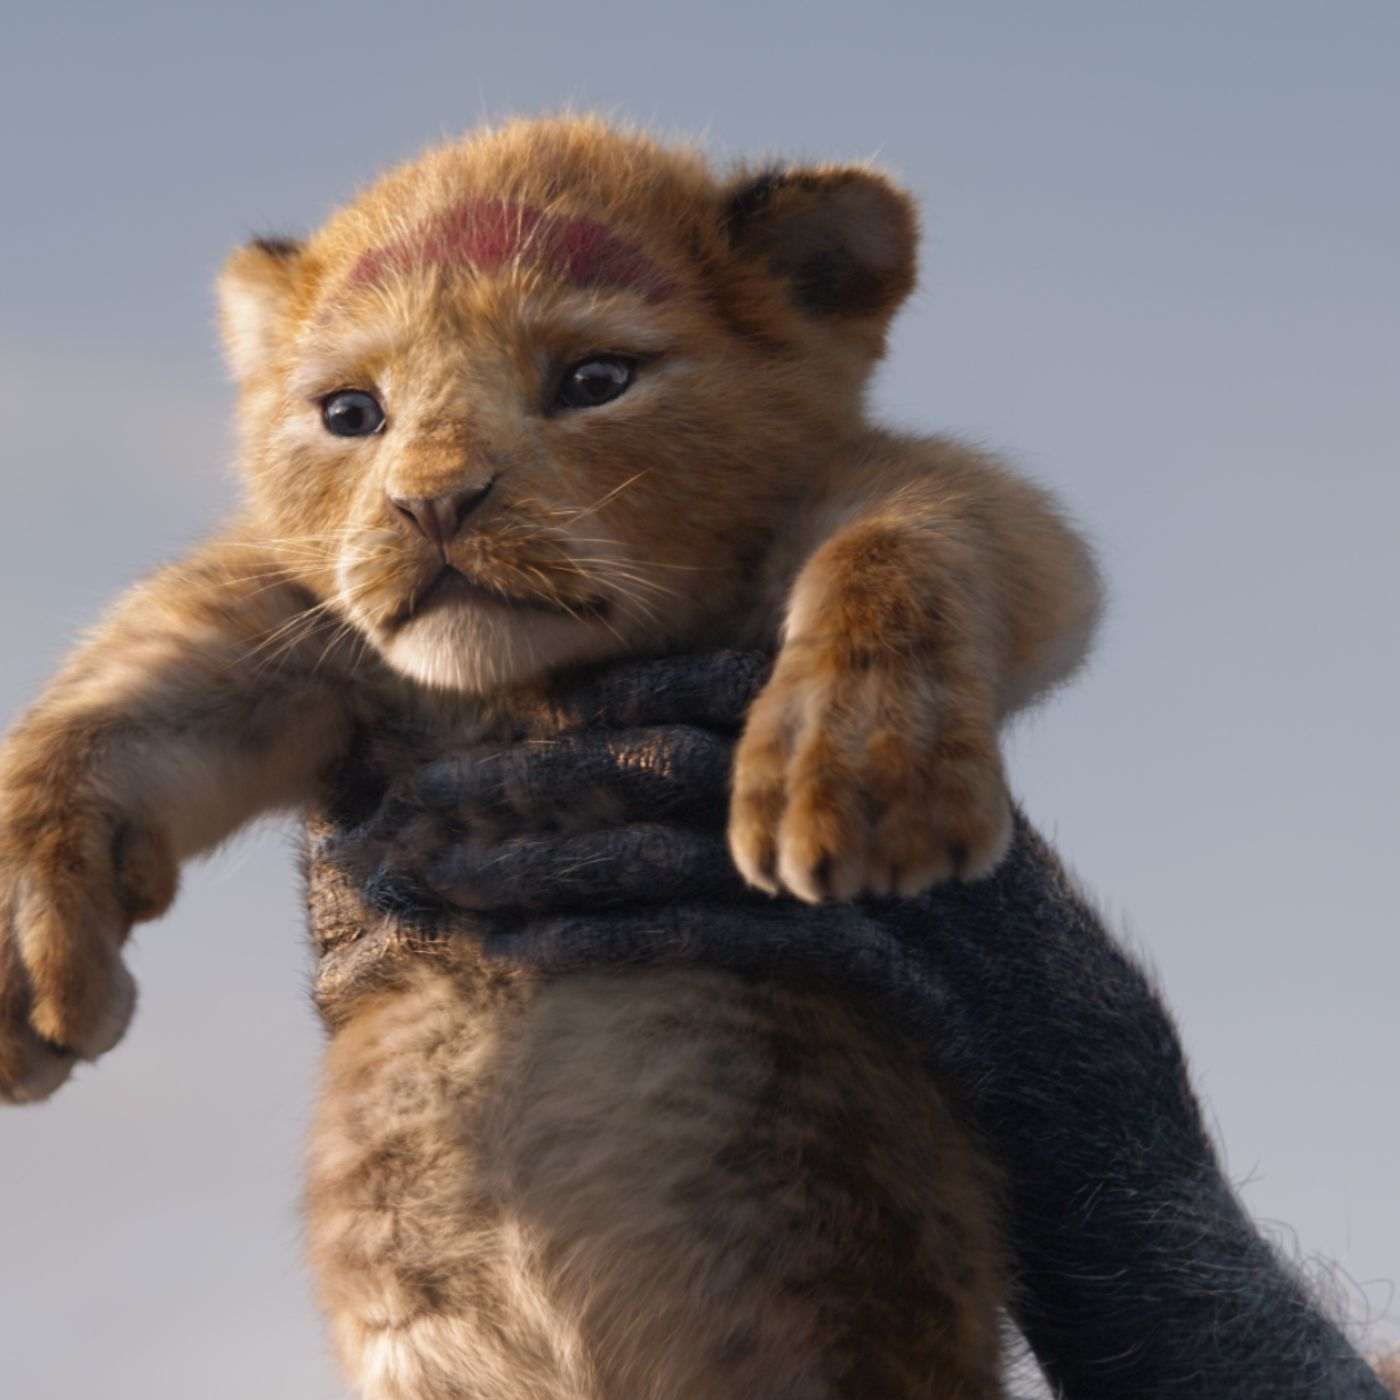 Music for new lion king